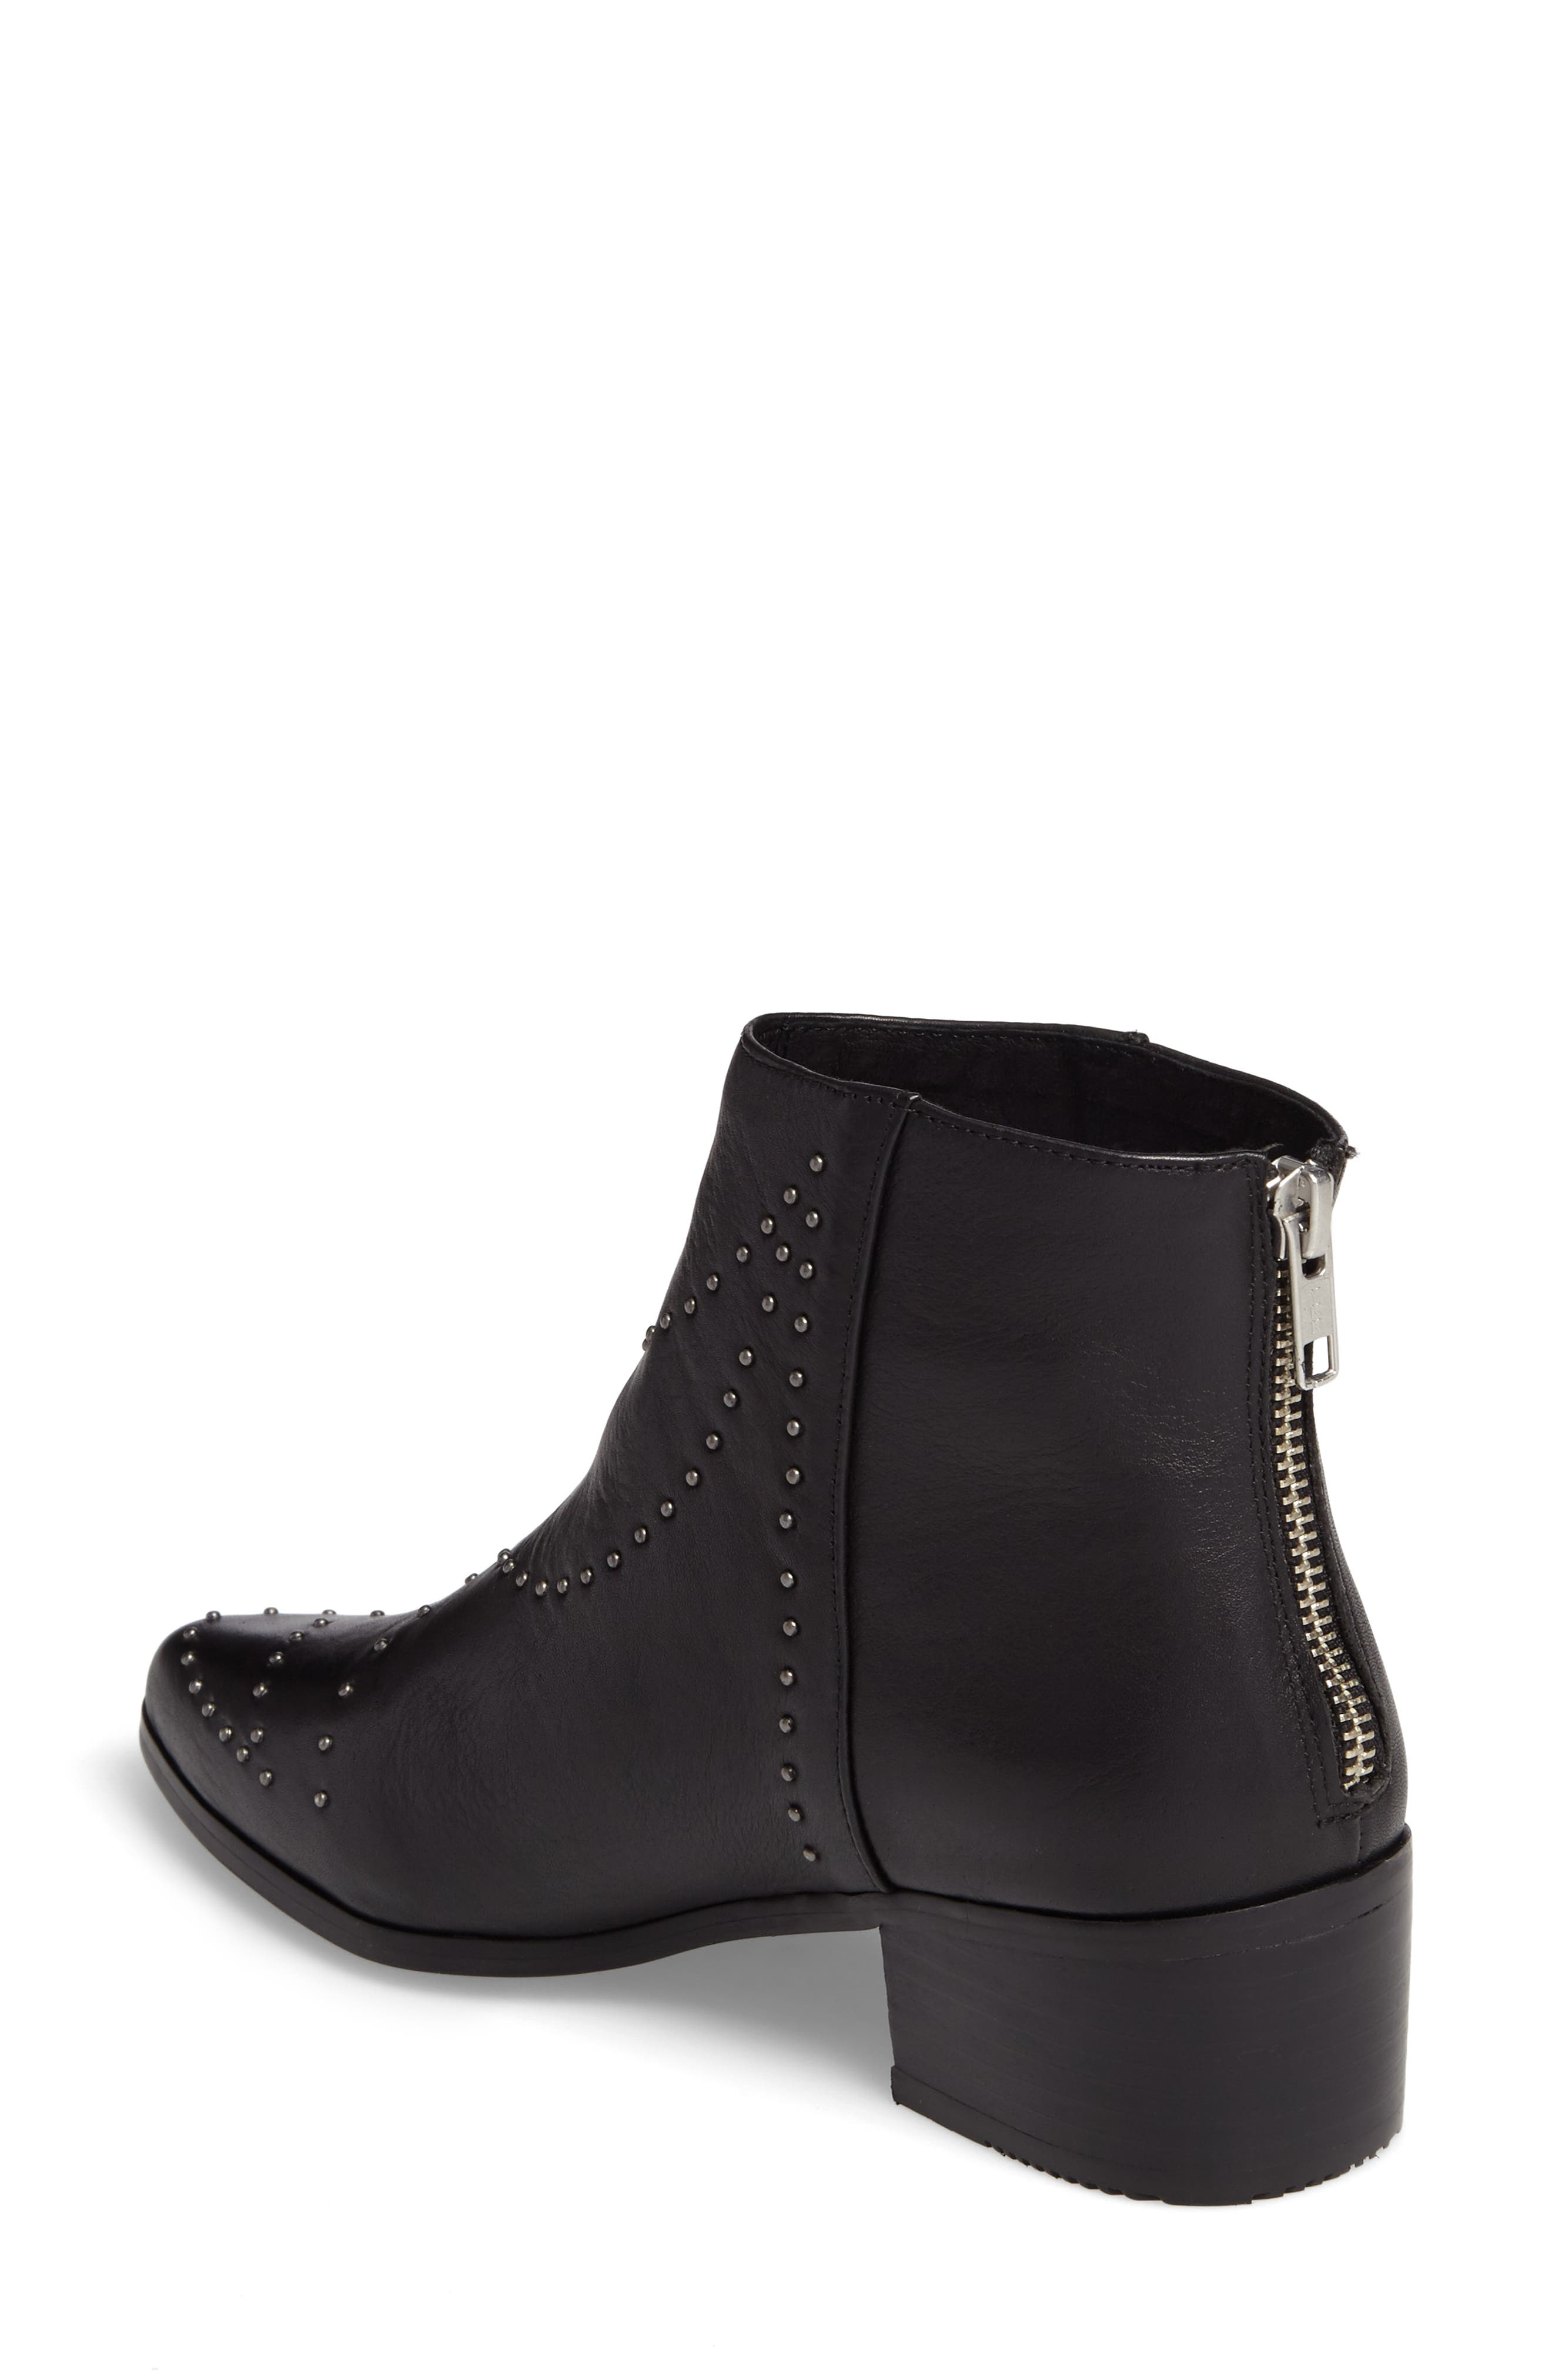 Wendy Studded Bootie,                             Alternate thumbnail 2, color,                             001